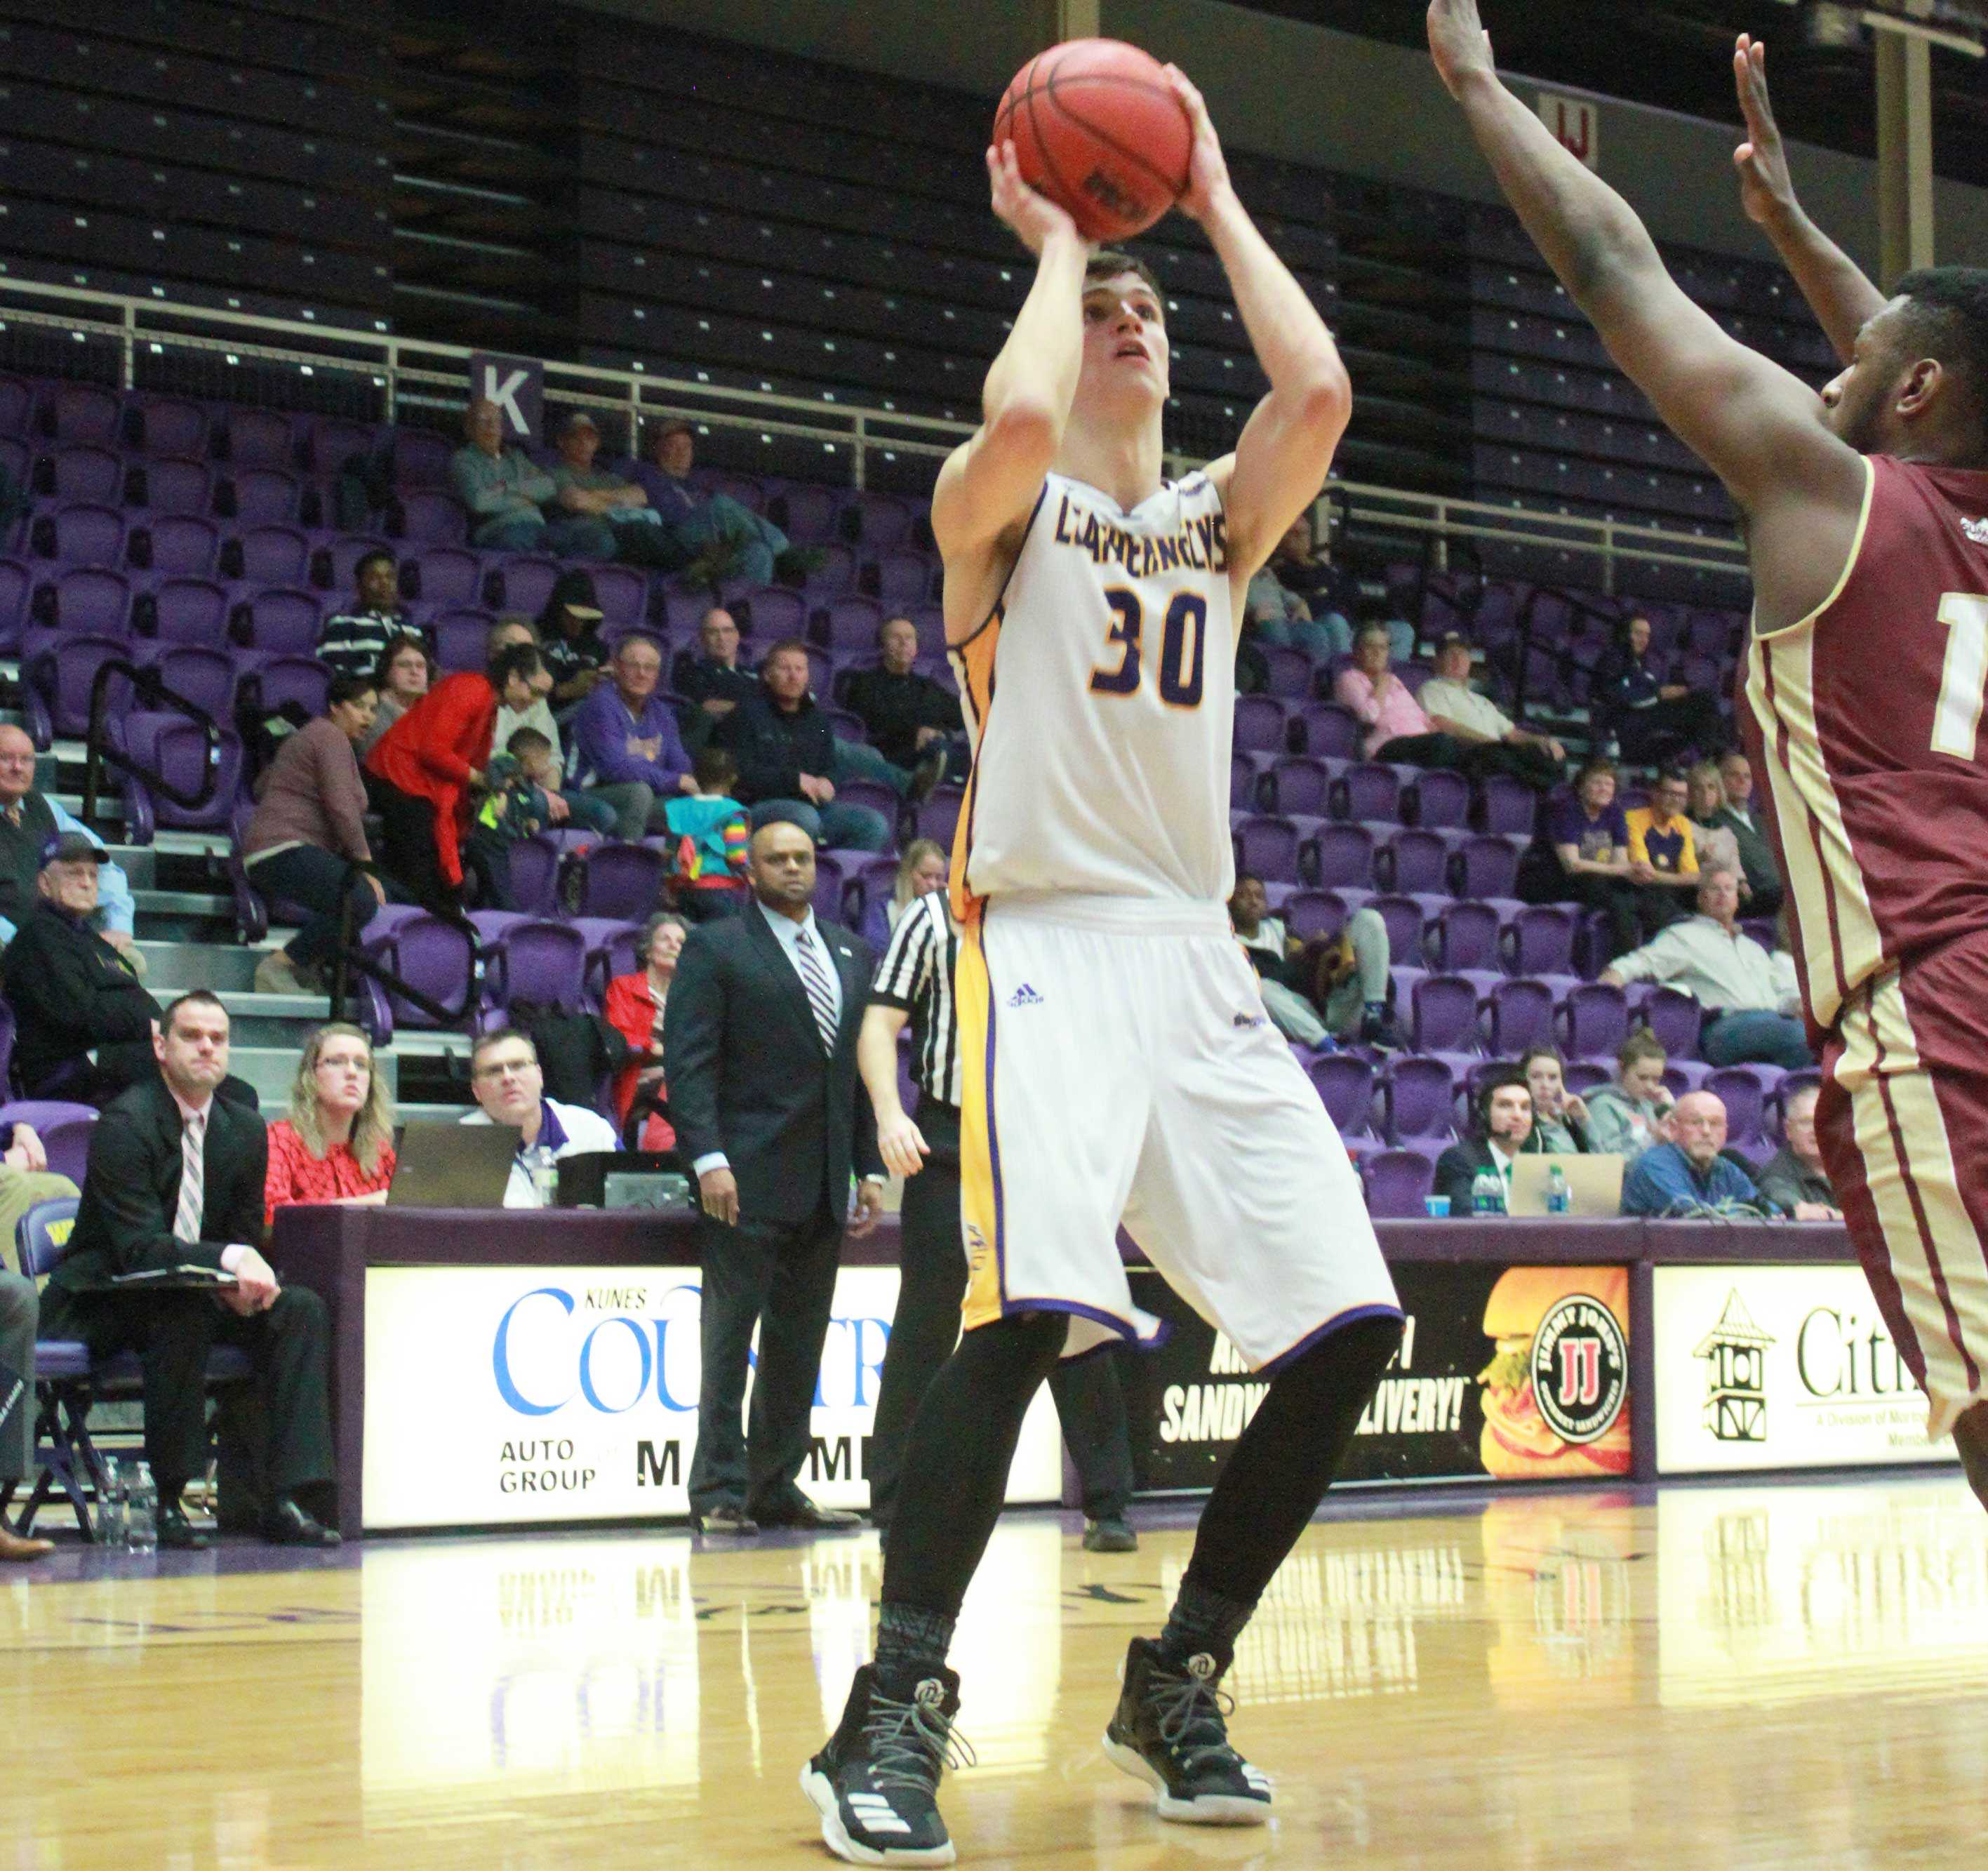 Mike Miklusak made four 3-pointers and scored 21 points last night.